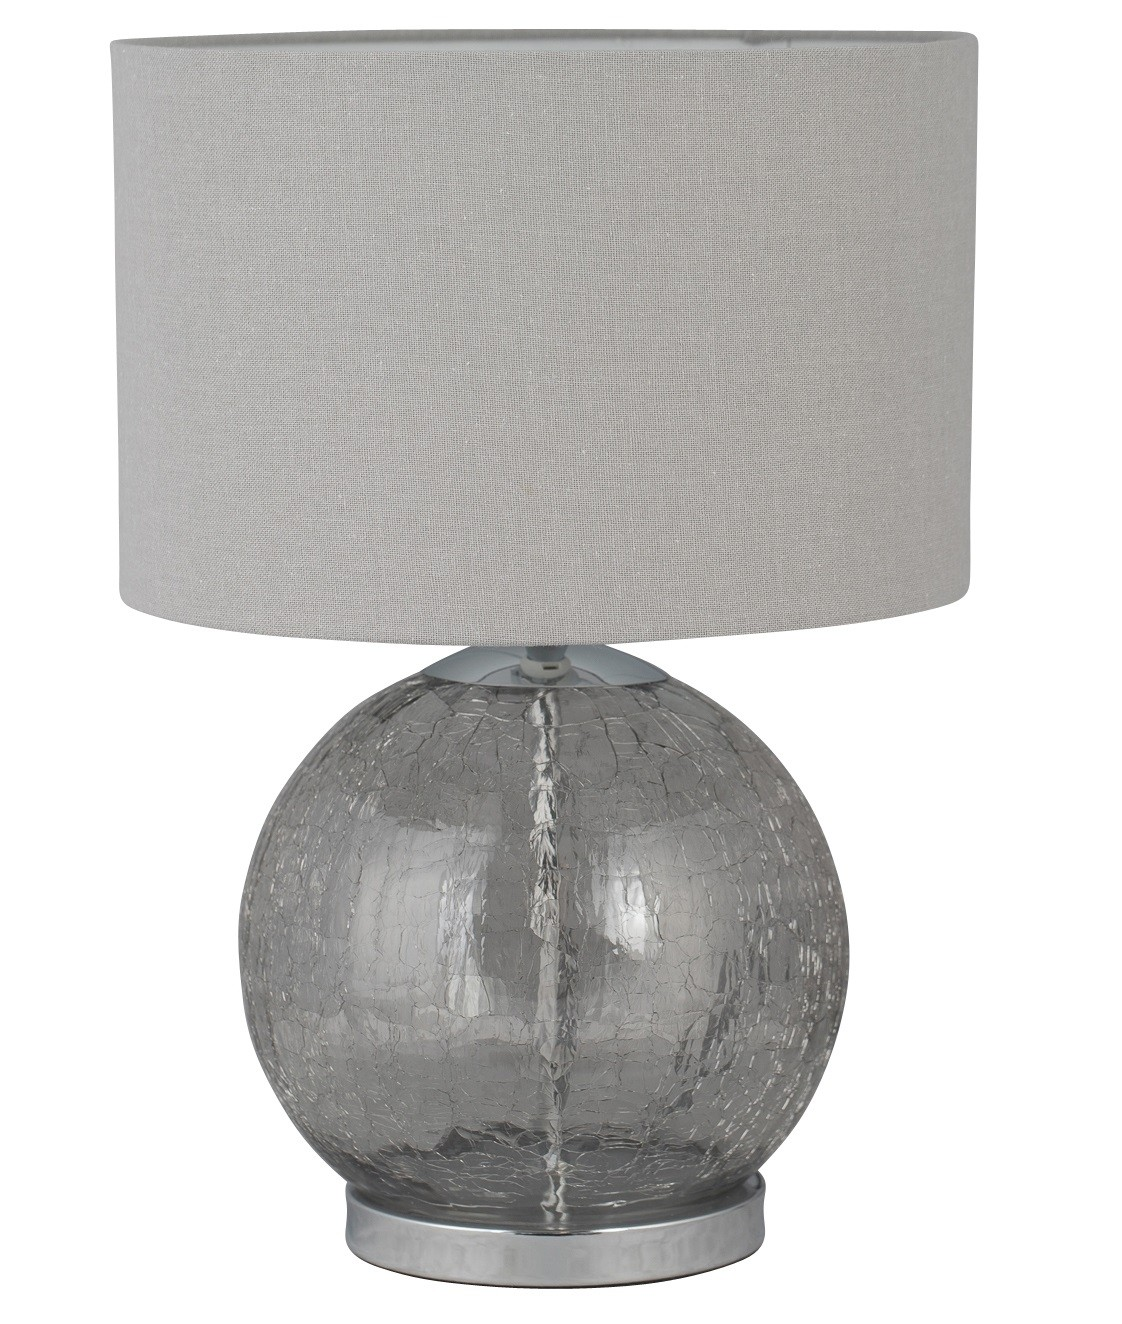 Glass Crackle Lamp Howe Crackle Glass 41cm Lamp With Grey Linen Shade